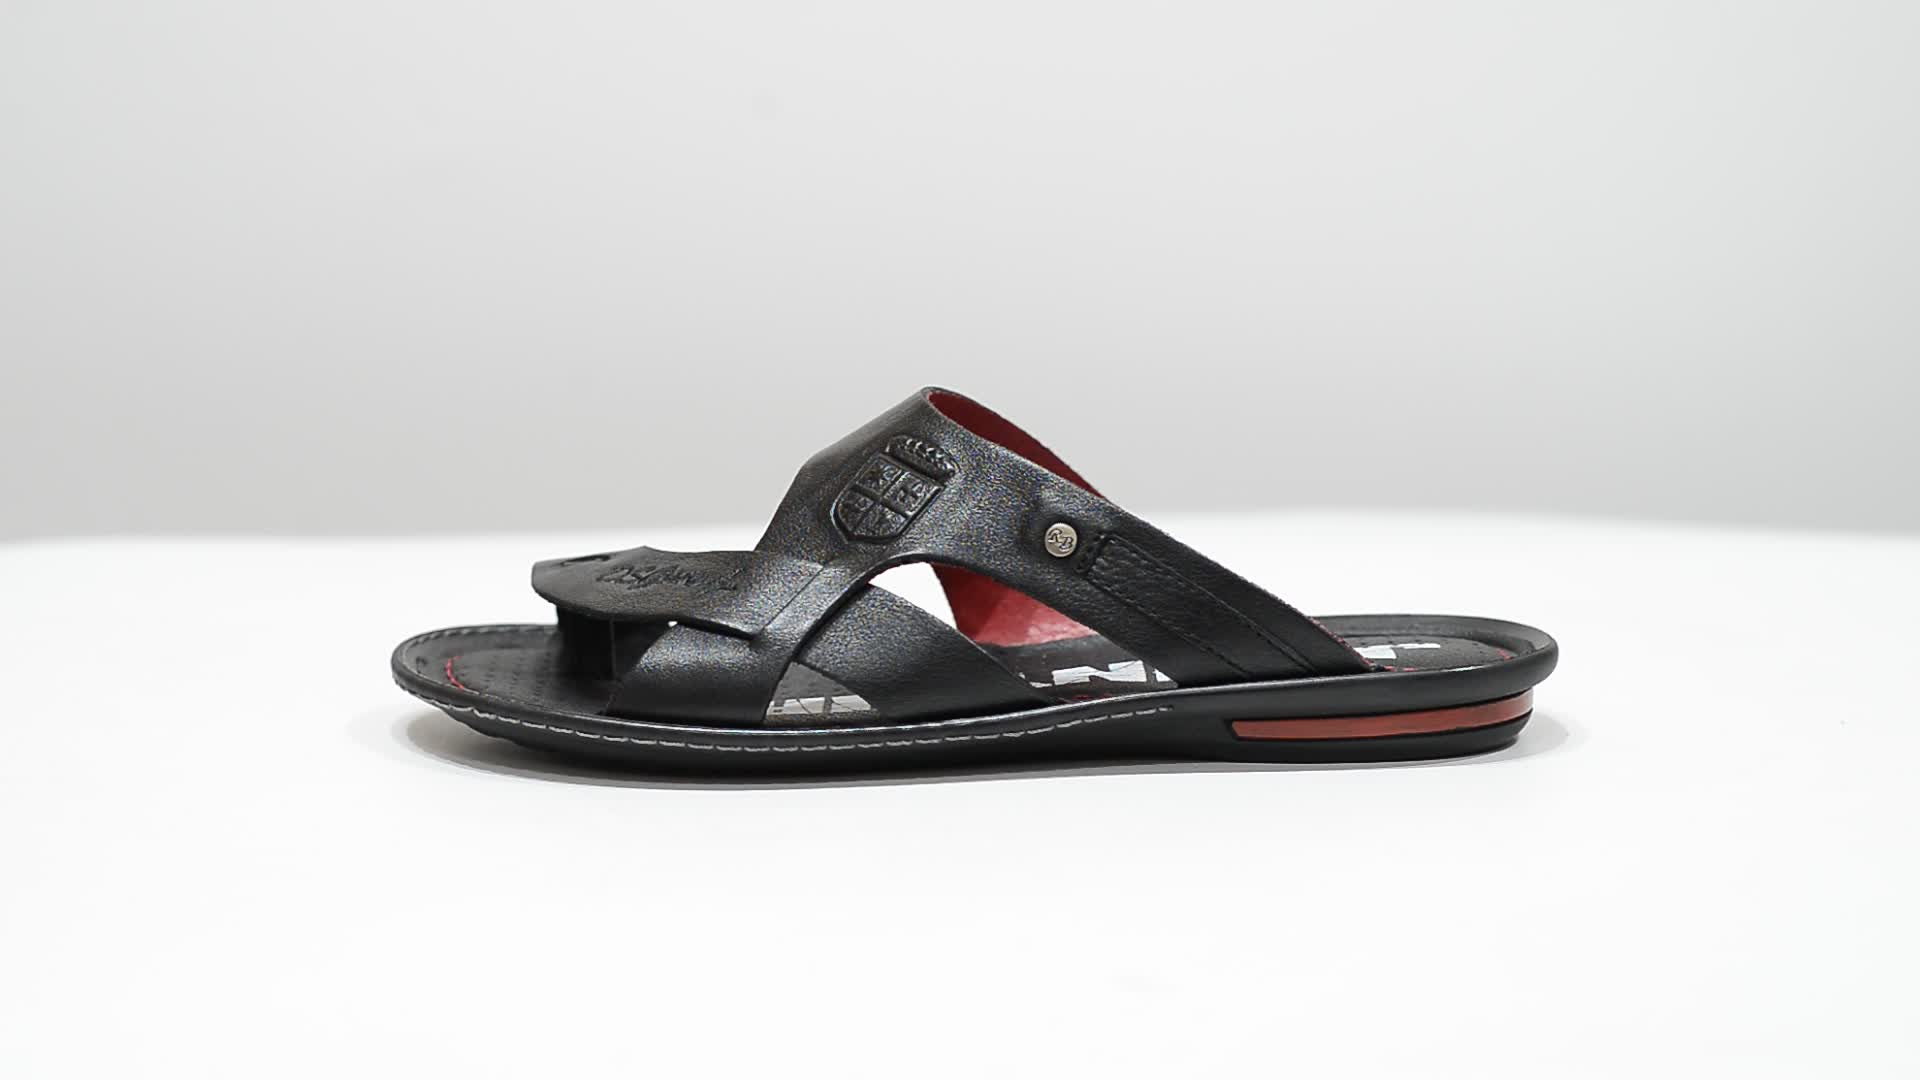 Summer 2018-2019 sandals for men, L340chp